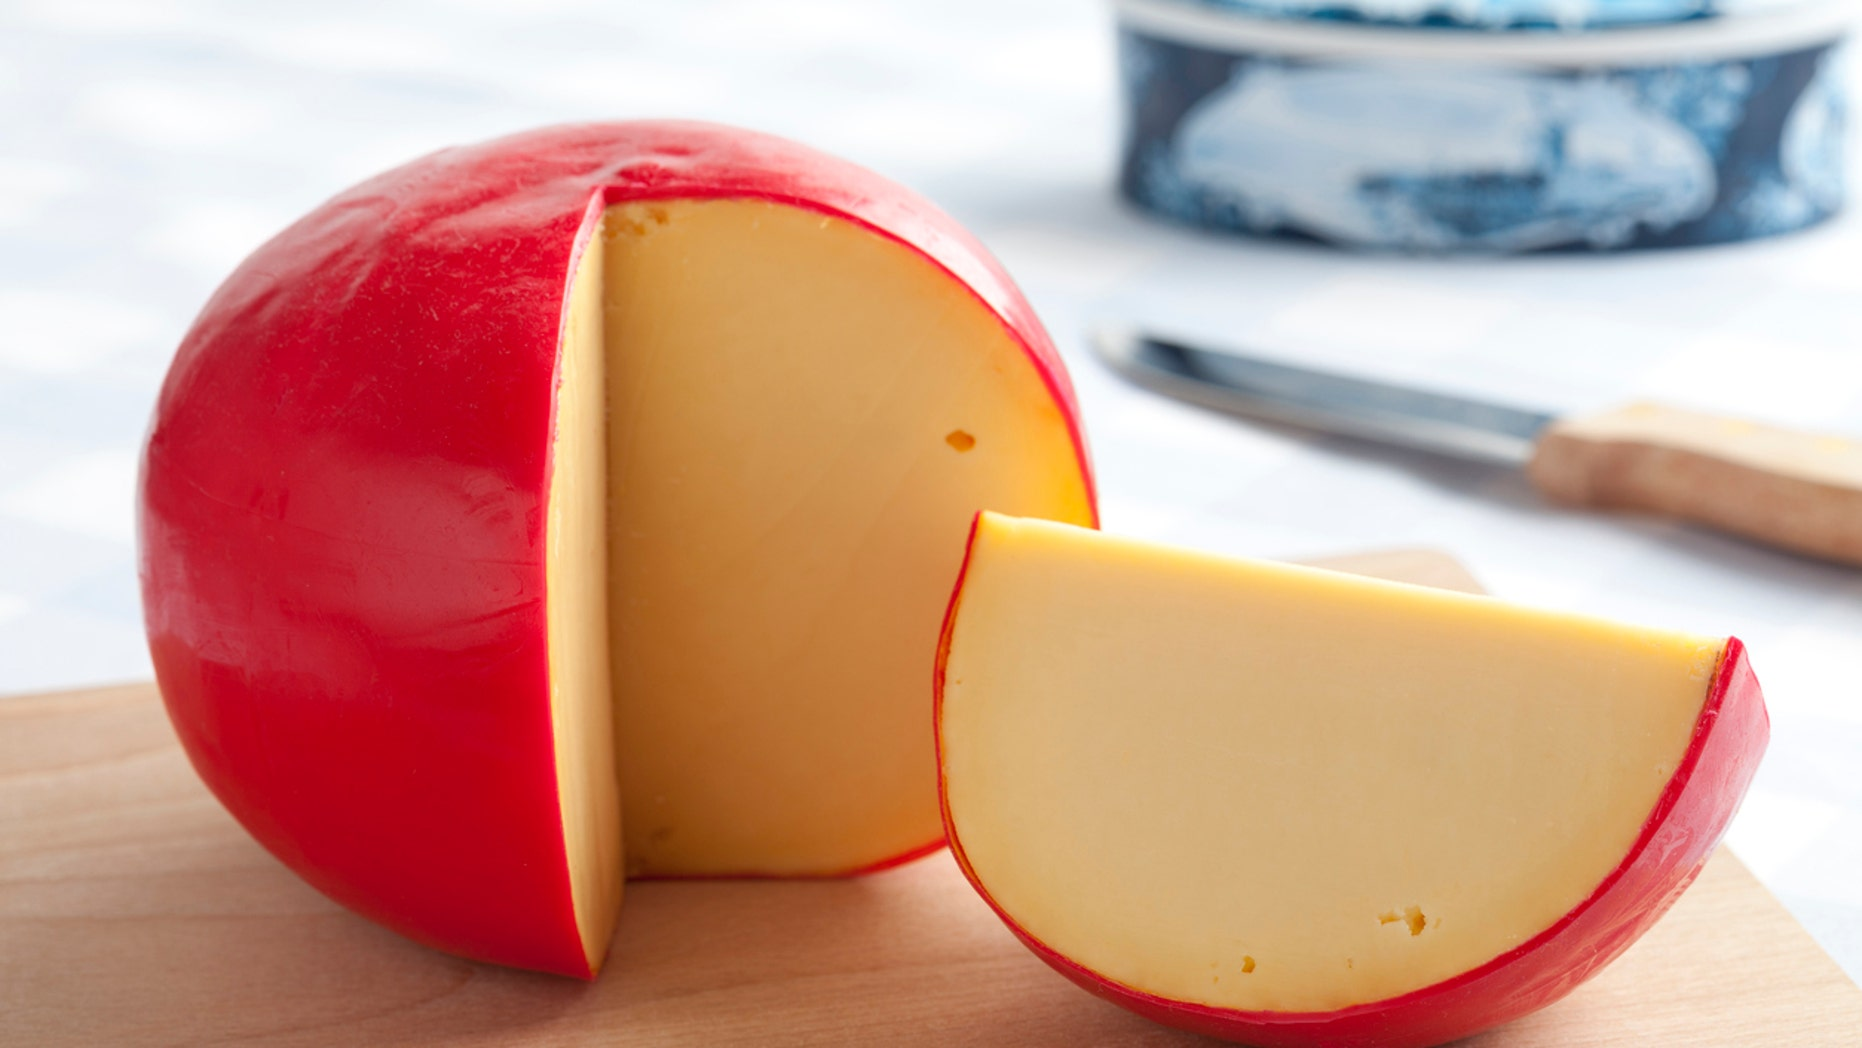 Although bread and cheese are staples in the French diet, residents of the country generally consume foods differently than Americans, opting for smaller portion sizes eaten at mealtimes, rather than snacks or binges.